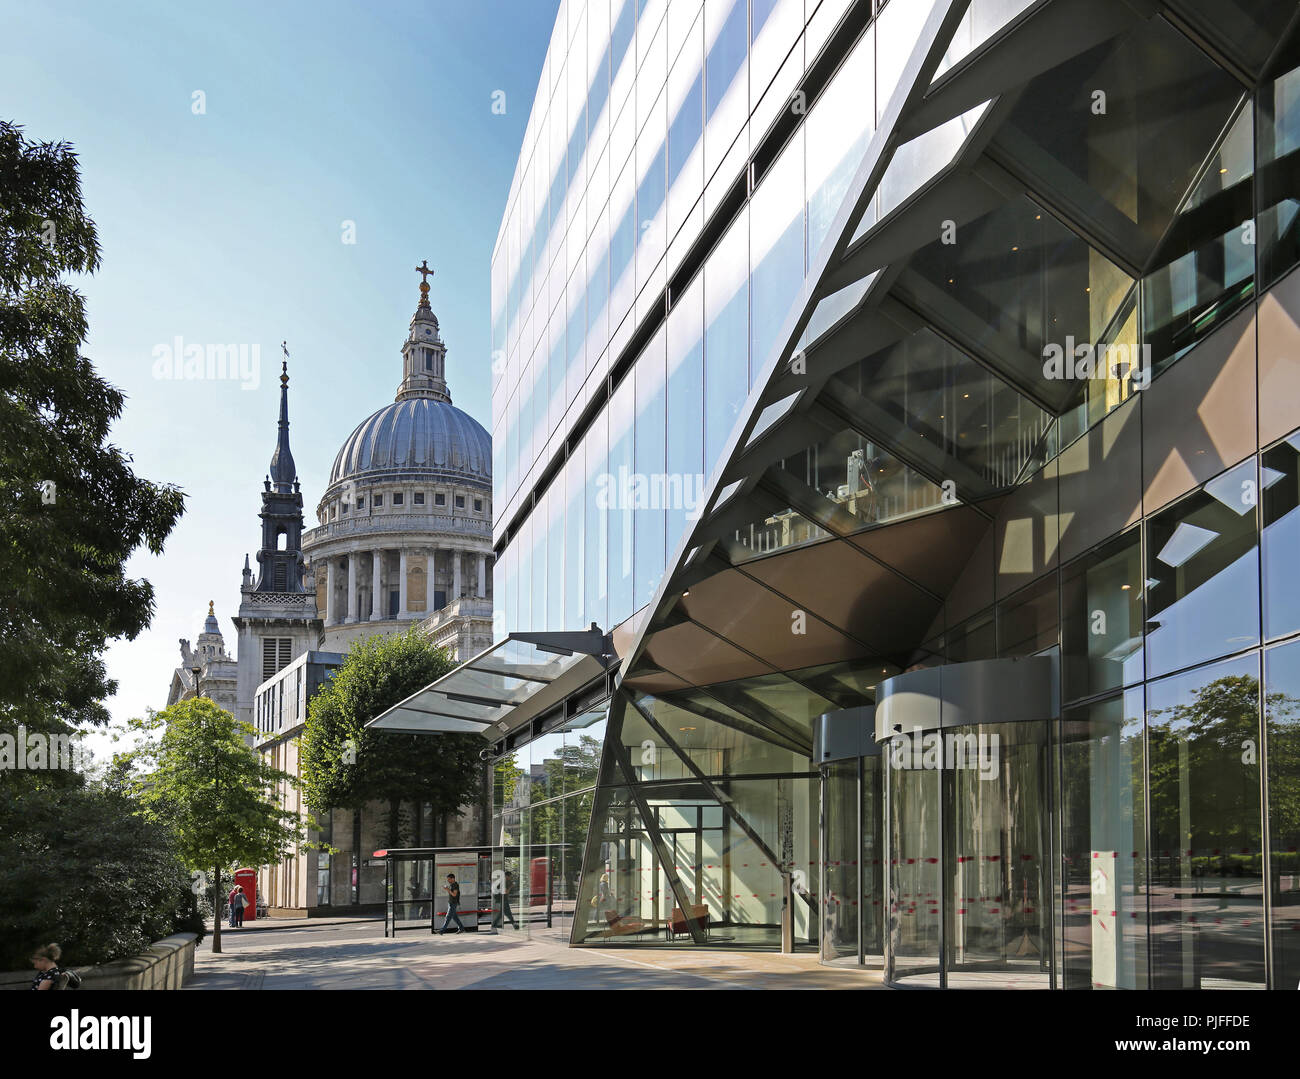 Entrance to the One New Change office development with St Pauls Cathedral beyond - contrasting the old and new. - Stock Image